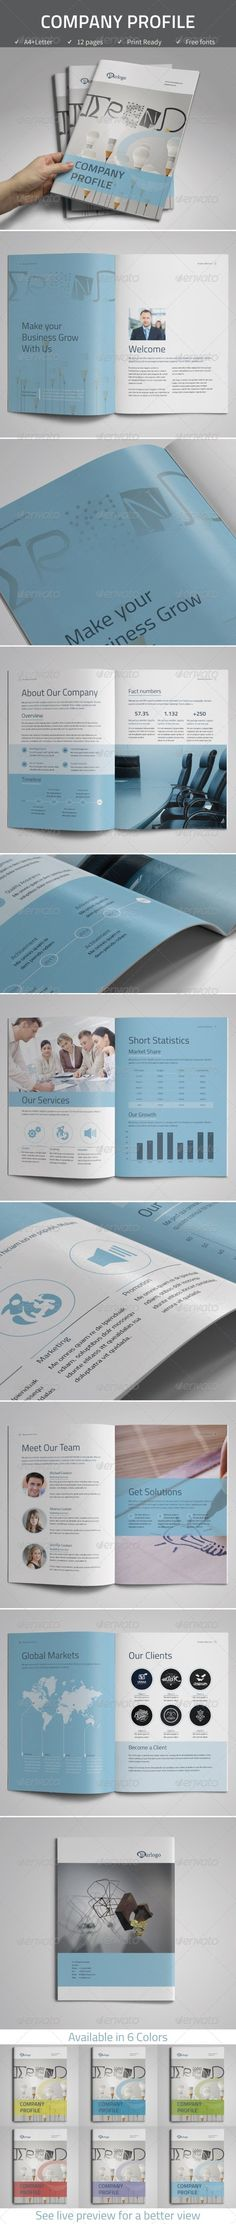 Company Profile Company profile, Cleaning companies and Brochures - profile company template